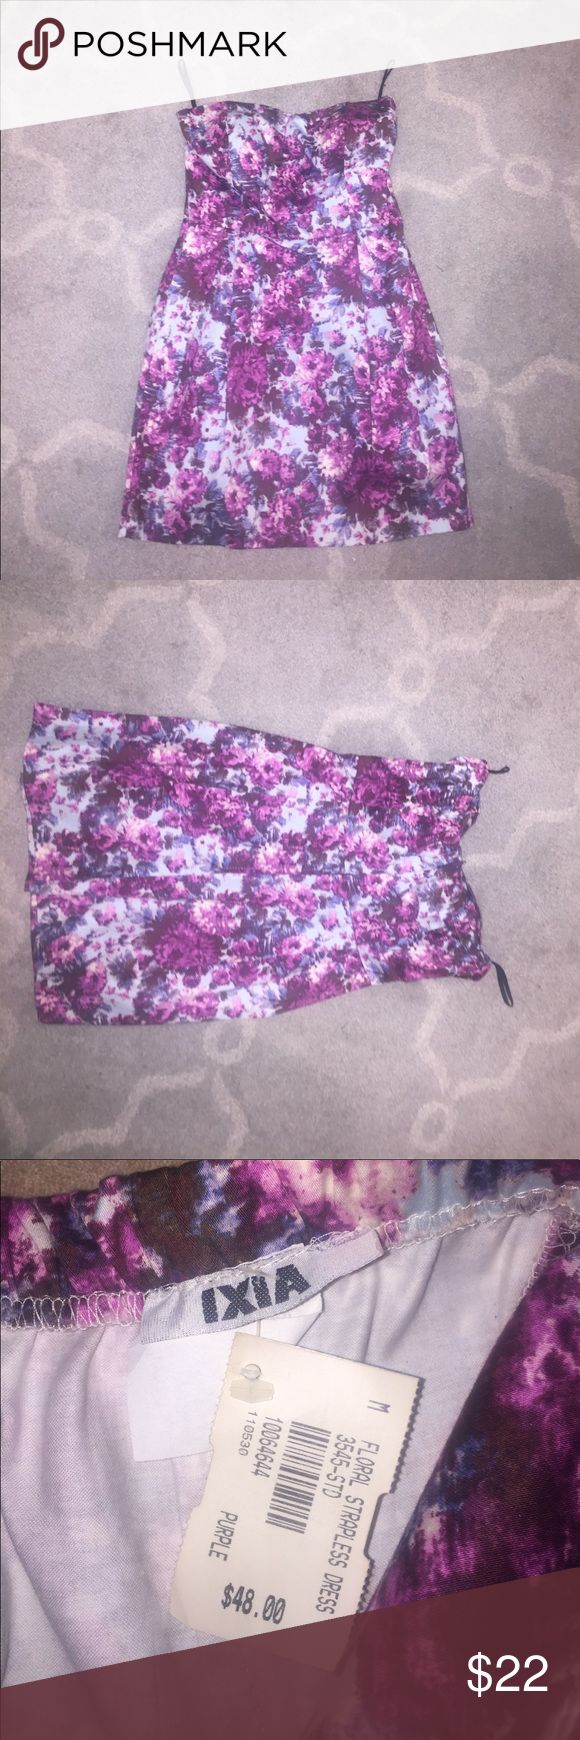 ⭐️NWT⭐️ Floral strapless dress Amazing multi color dress! Shades of purple and blue. Perfect for a wedding, shower, or casual night out! Never worn. Ixia Dresses Mini